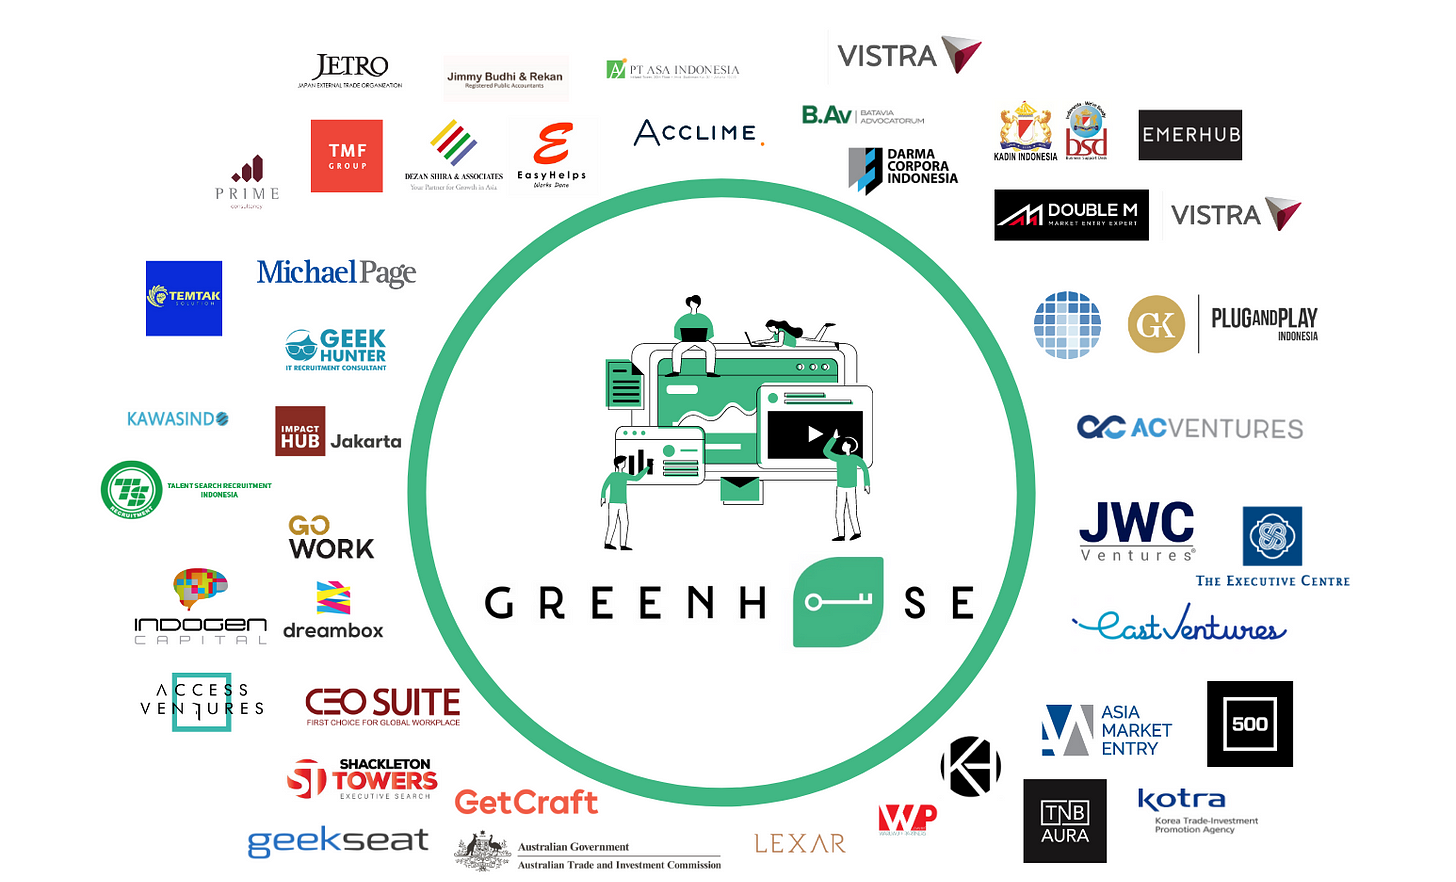 Services Ecosystem at Greenhouse